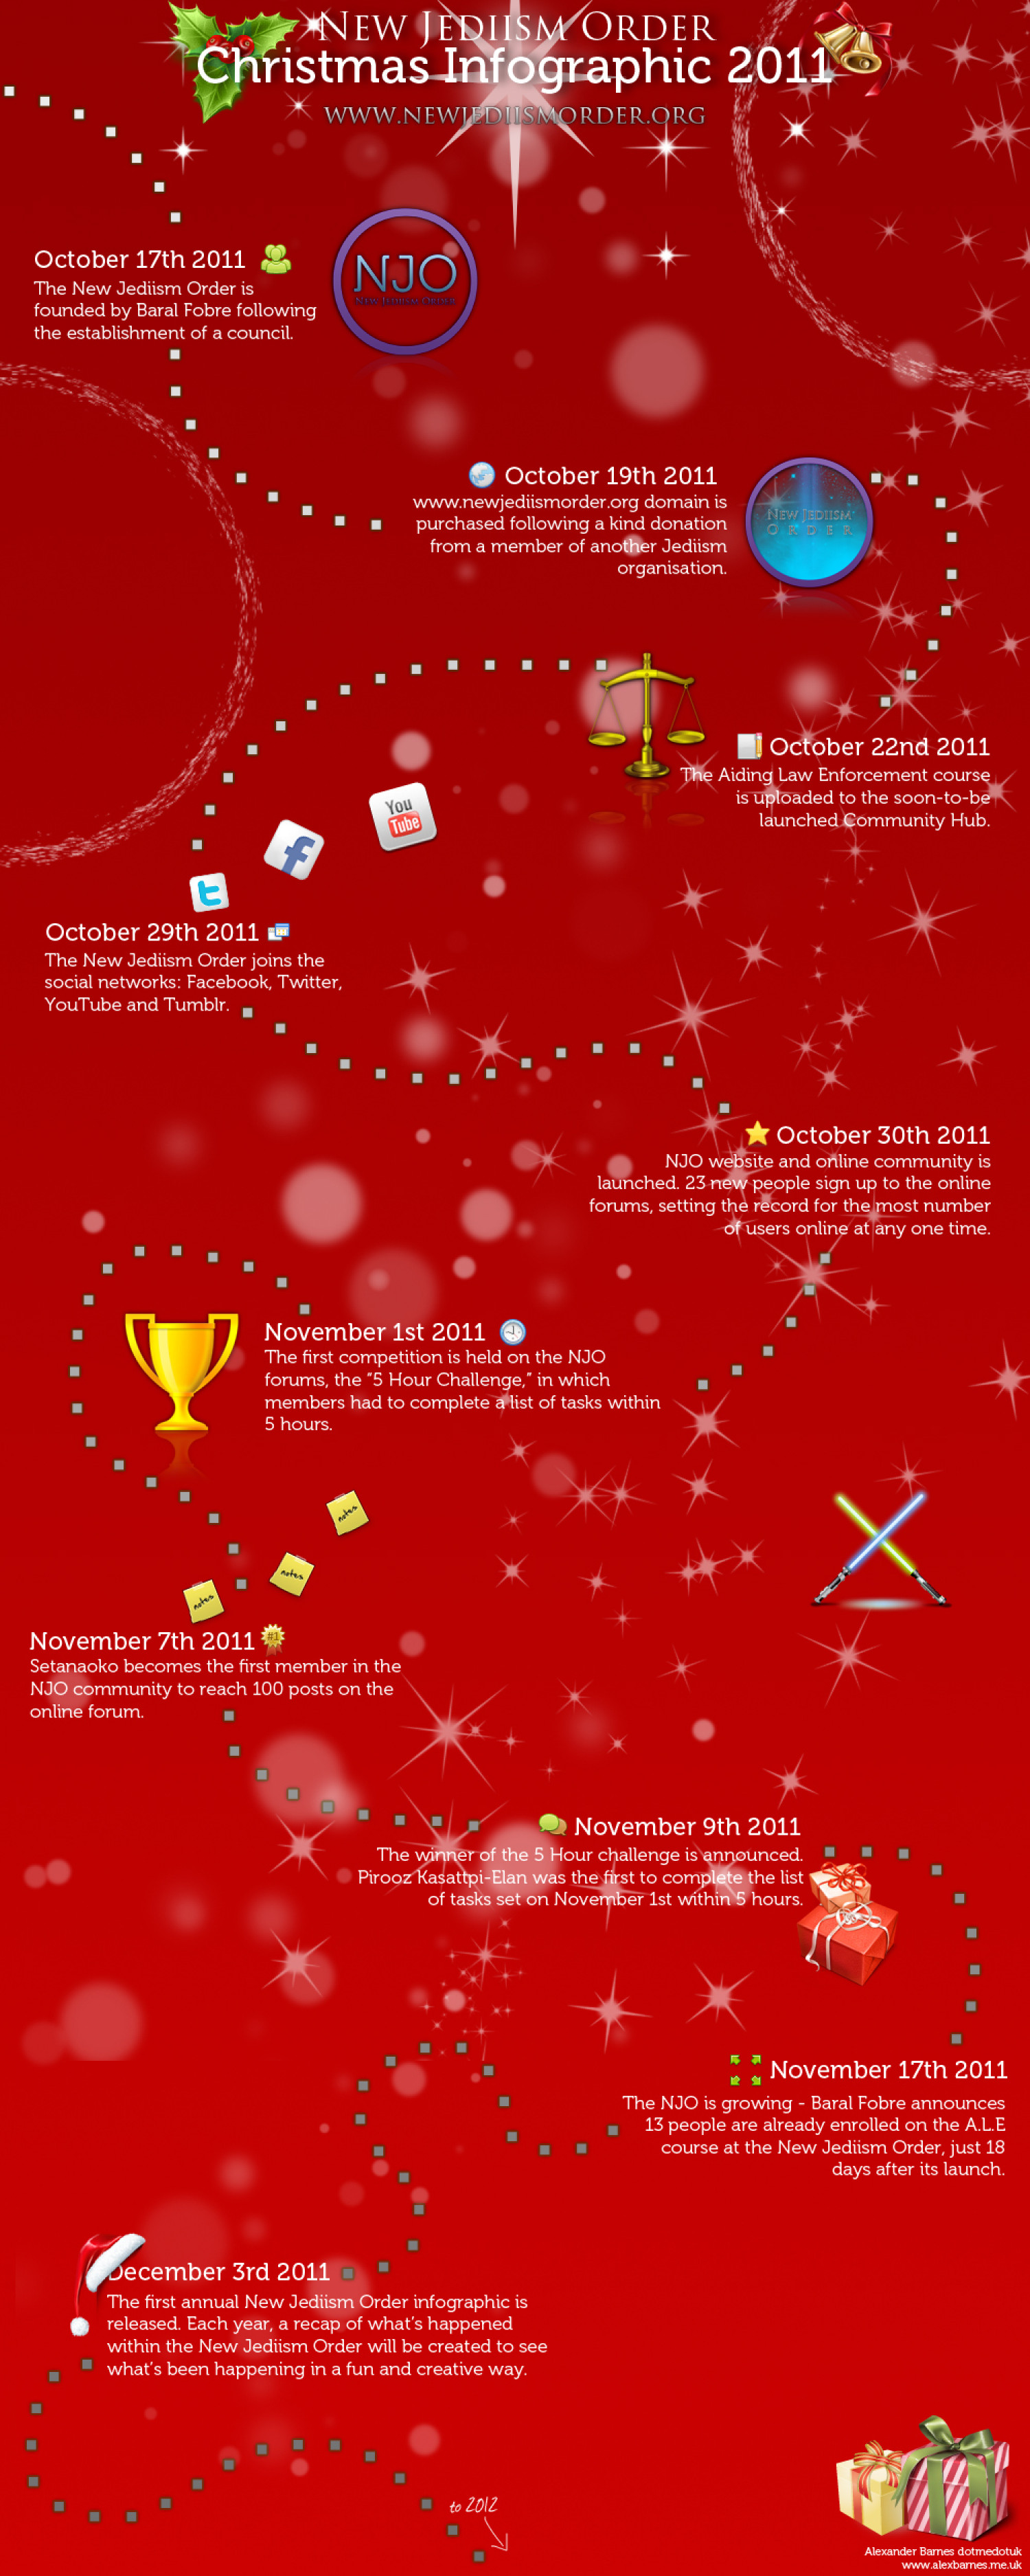 New Jediism Order Christmas Infographic 2011 Infographic